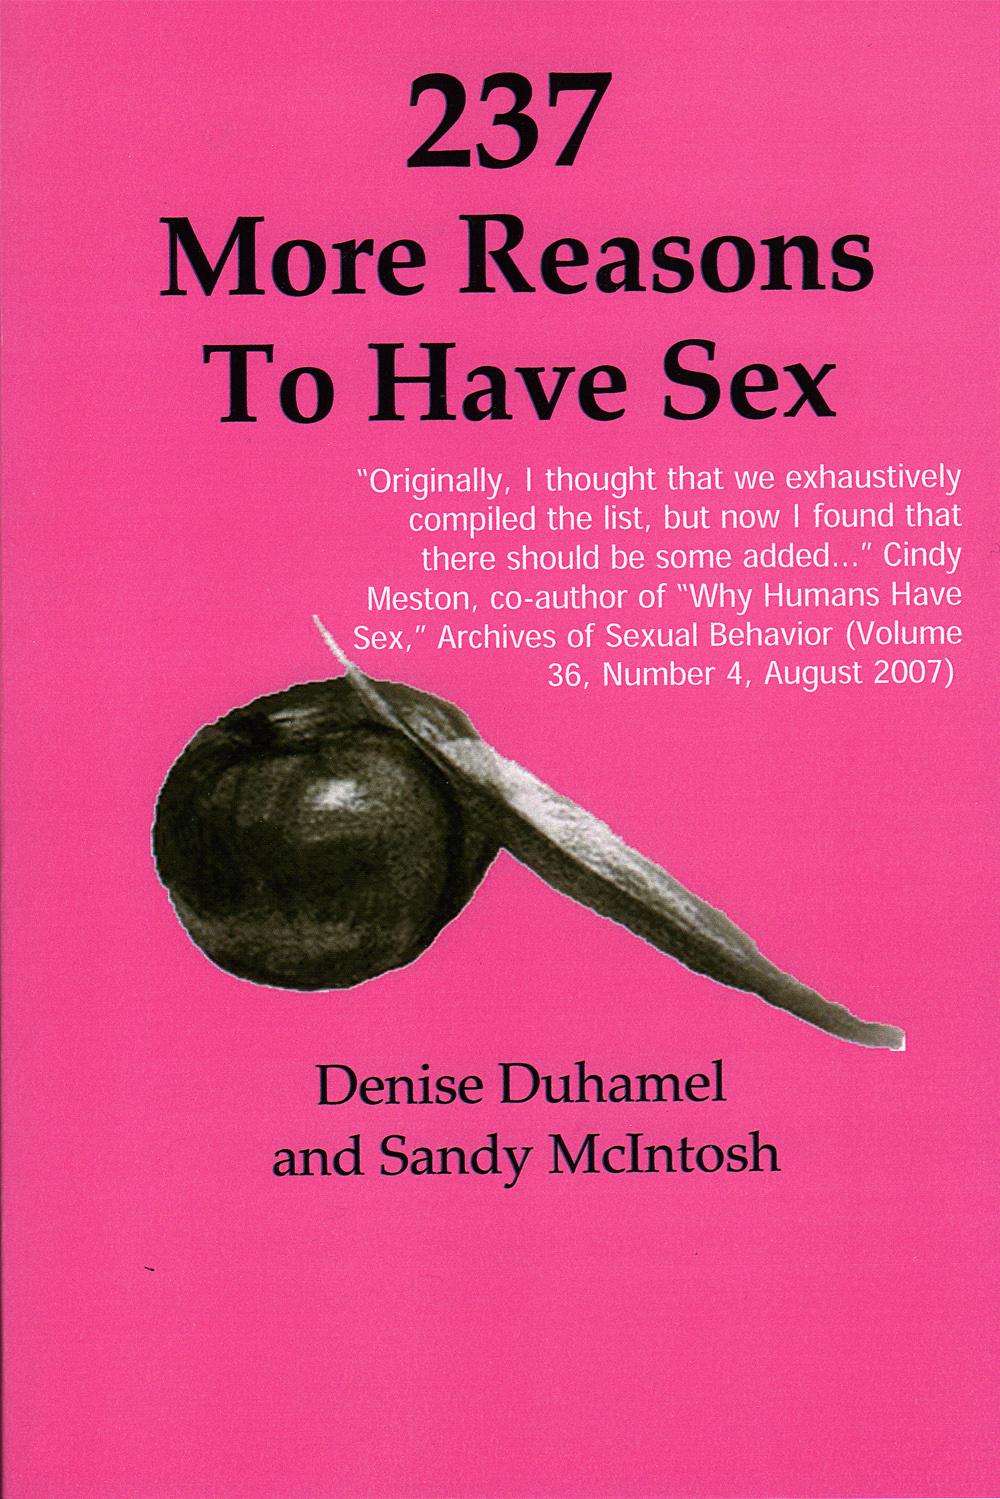 237 More Reasons to Have Sex